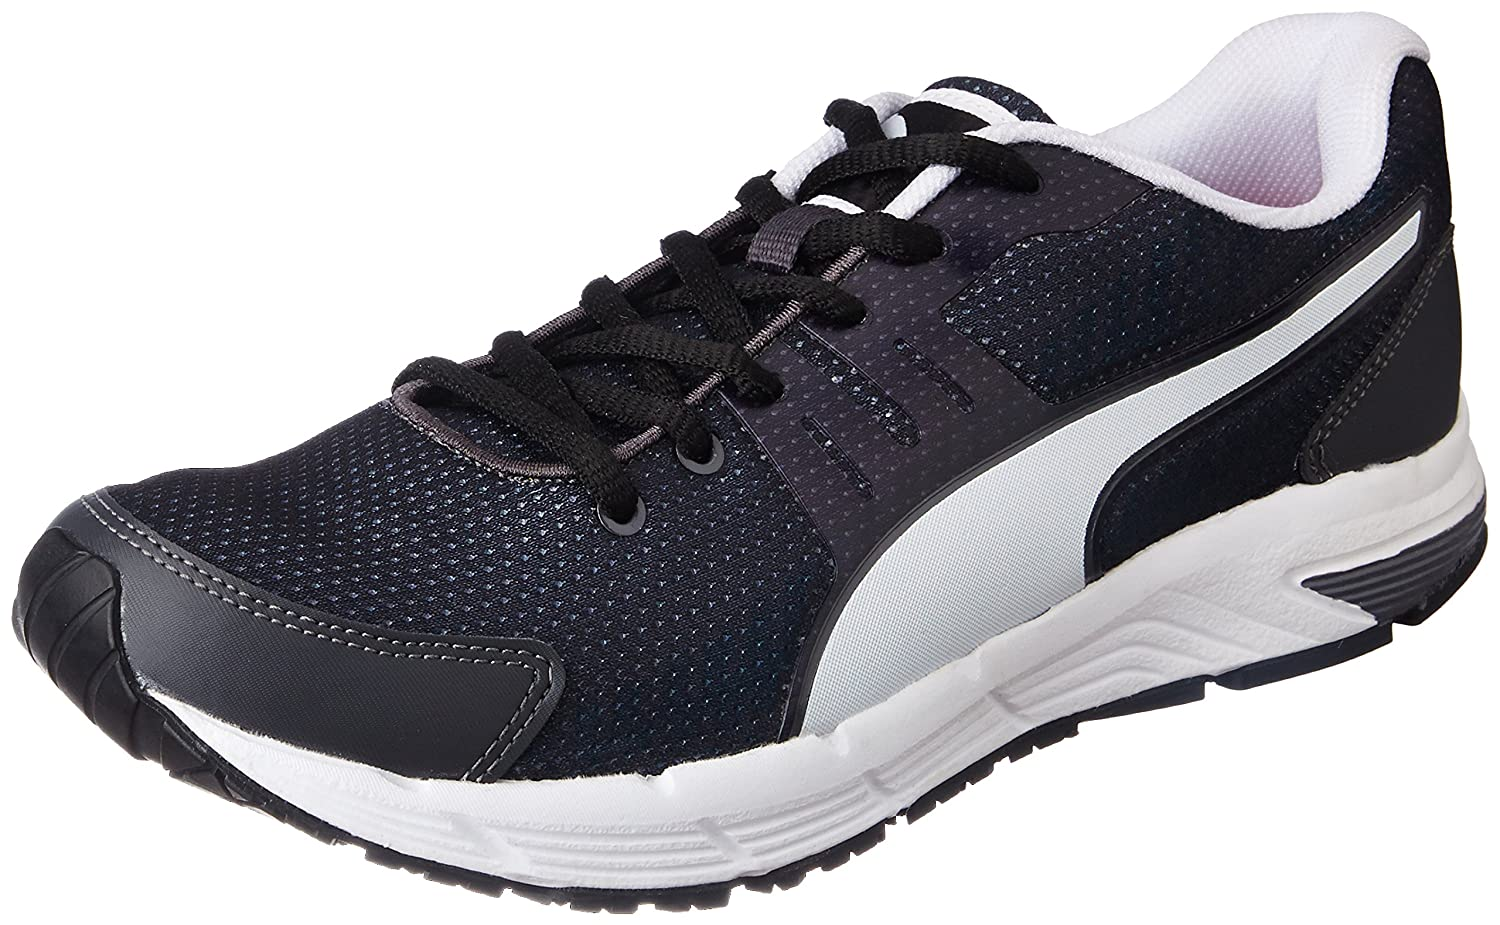 68fb7280cf8 Puma Men s Ultron IDP Running Shoes  Buy Online at Low Prices in India -  Amazon.in